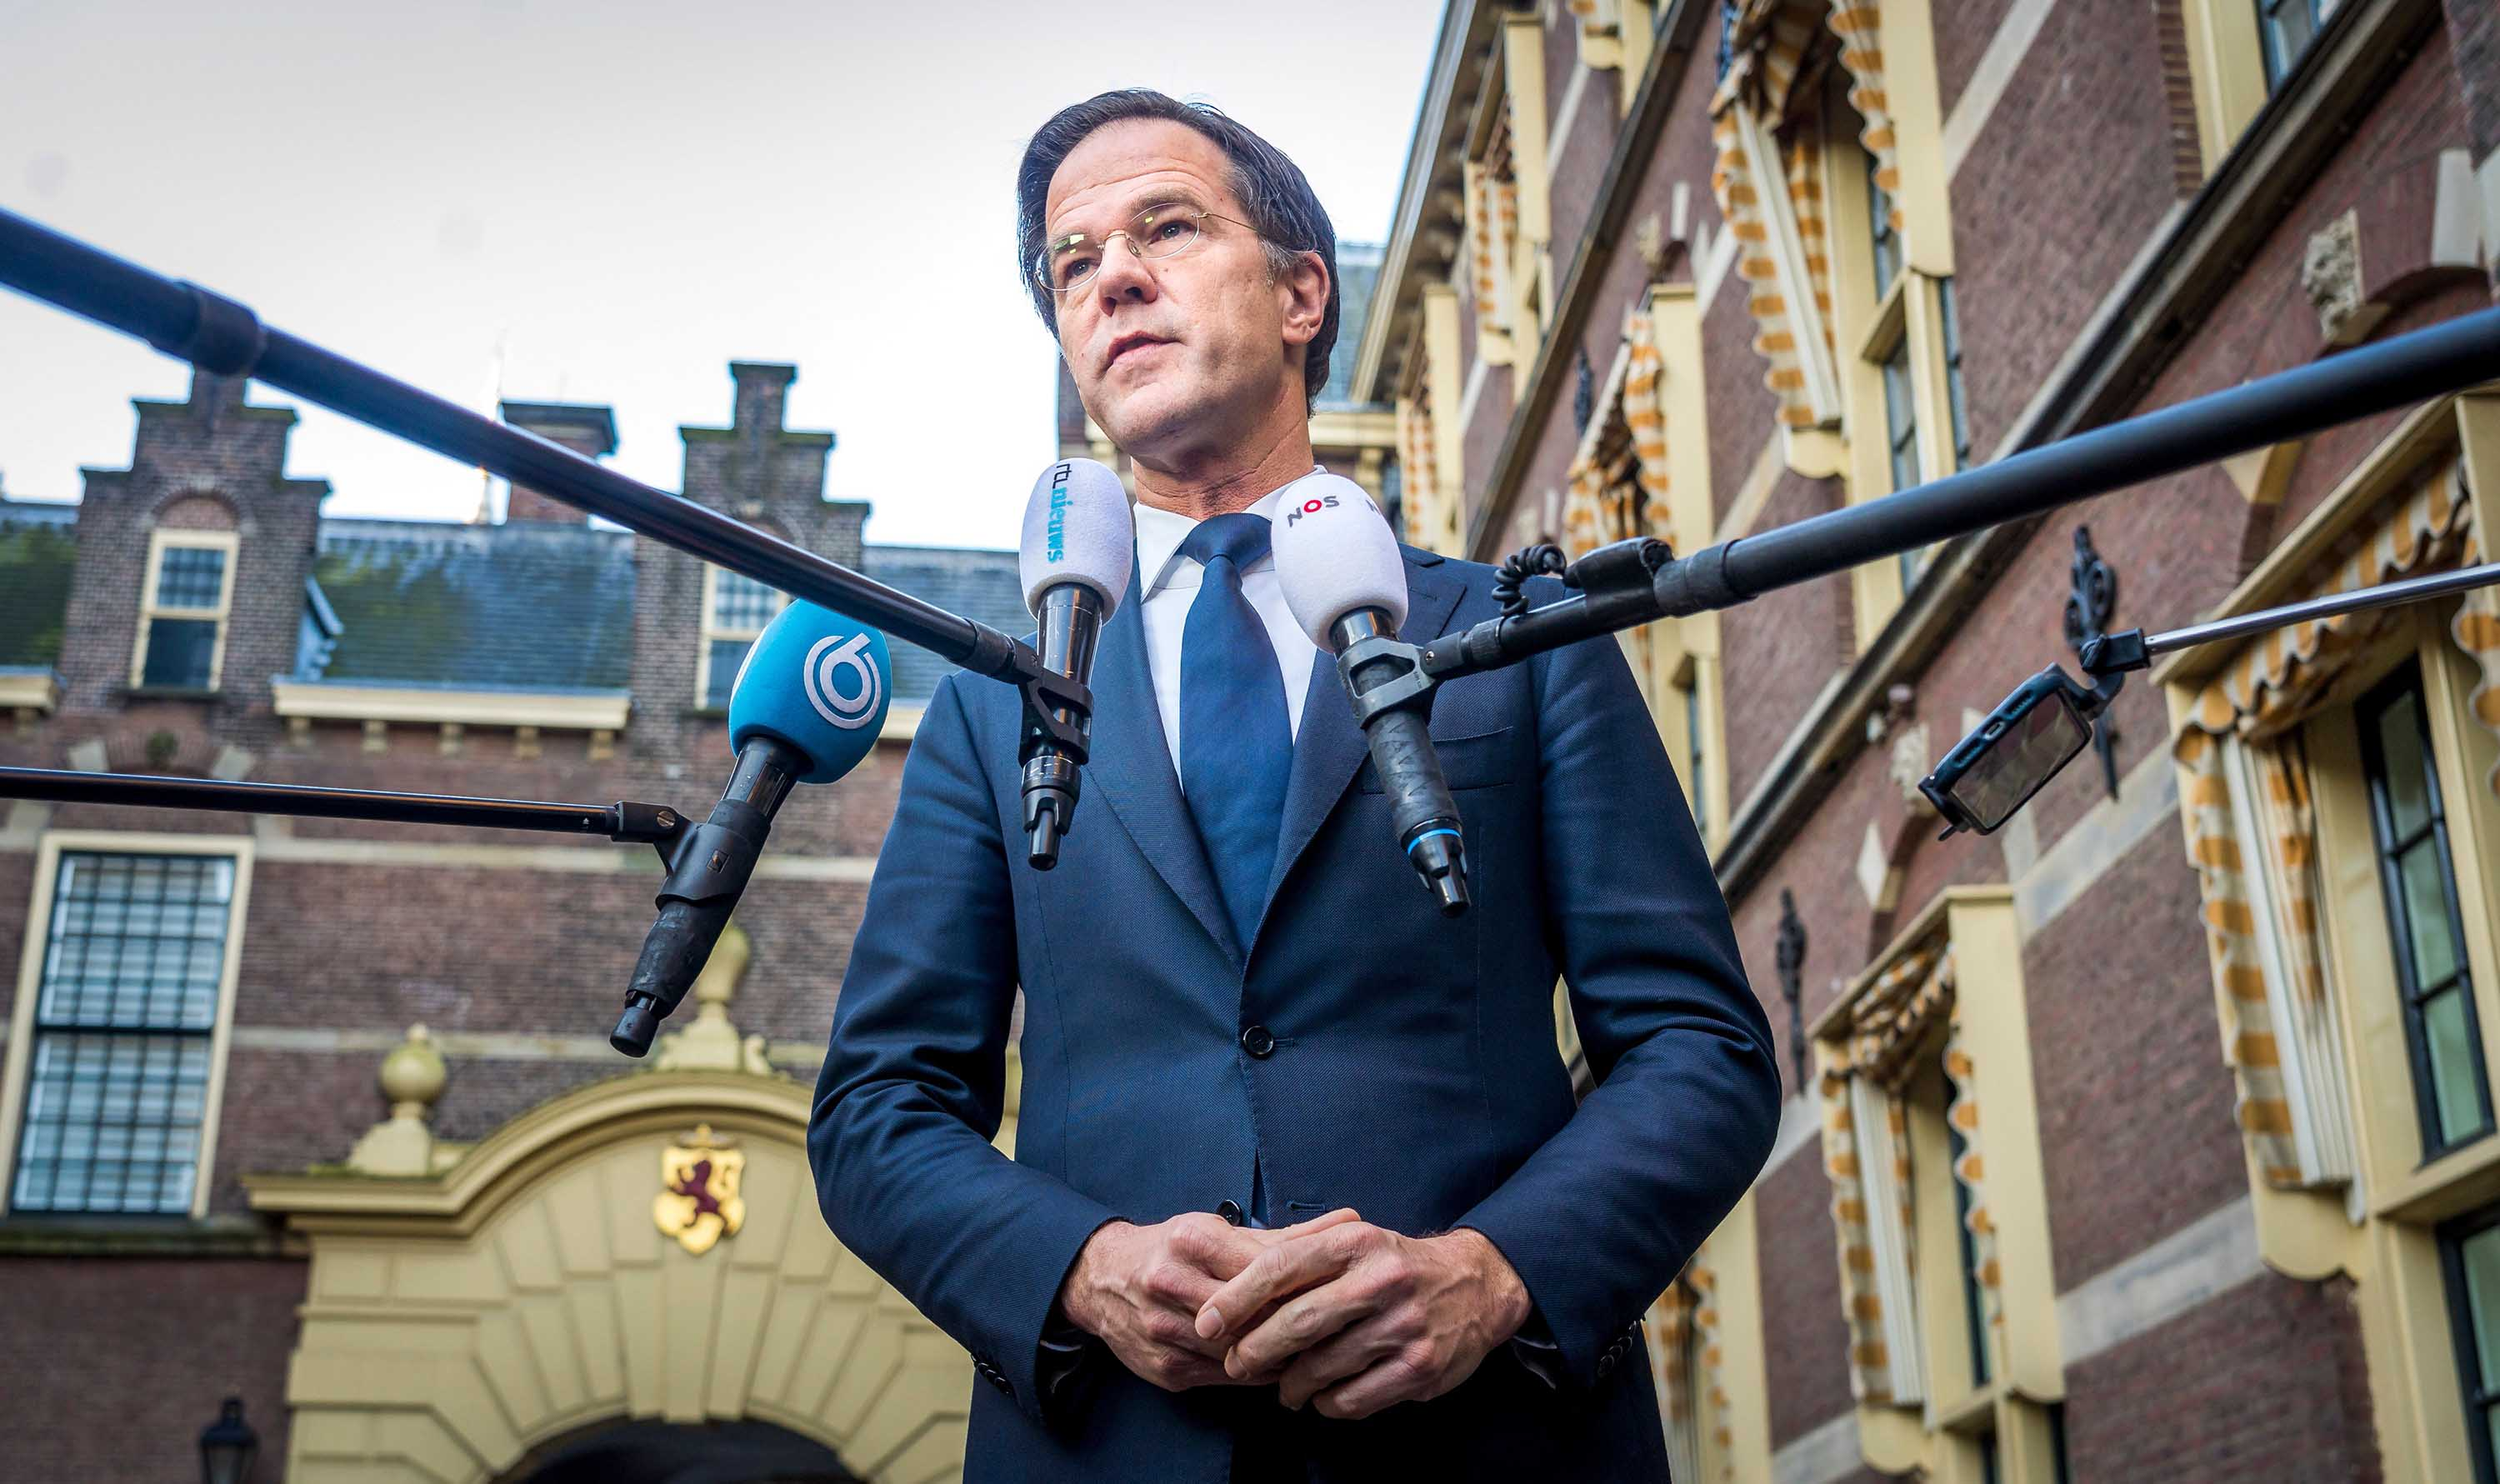 Dutch Prime Minister Mark Rutte speaks to the press about the curfew at the Ministry of General Affairs in the Hague, the Netherlands, on January 25.